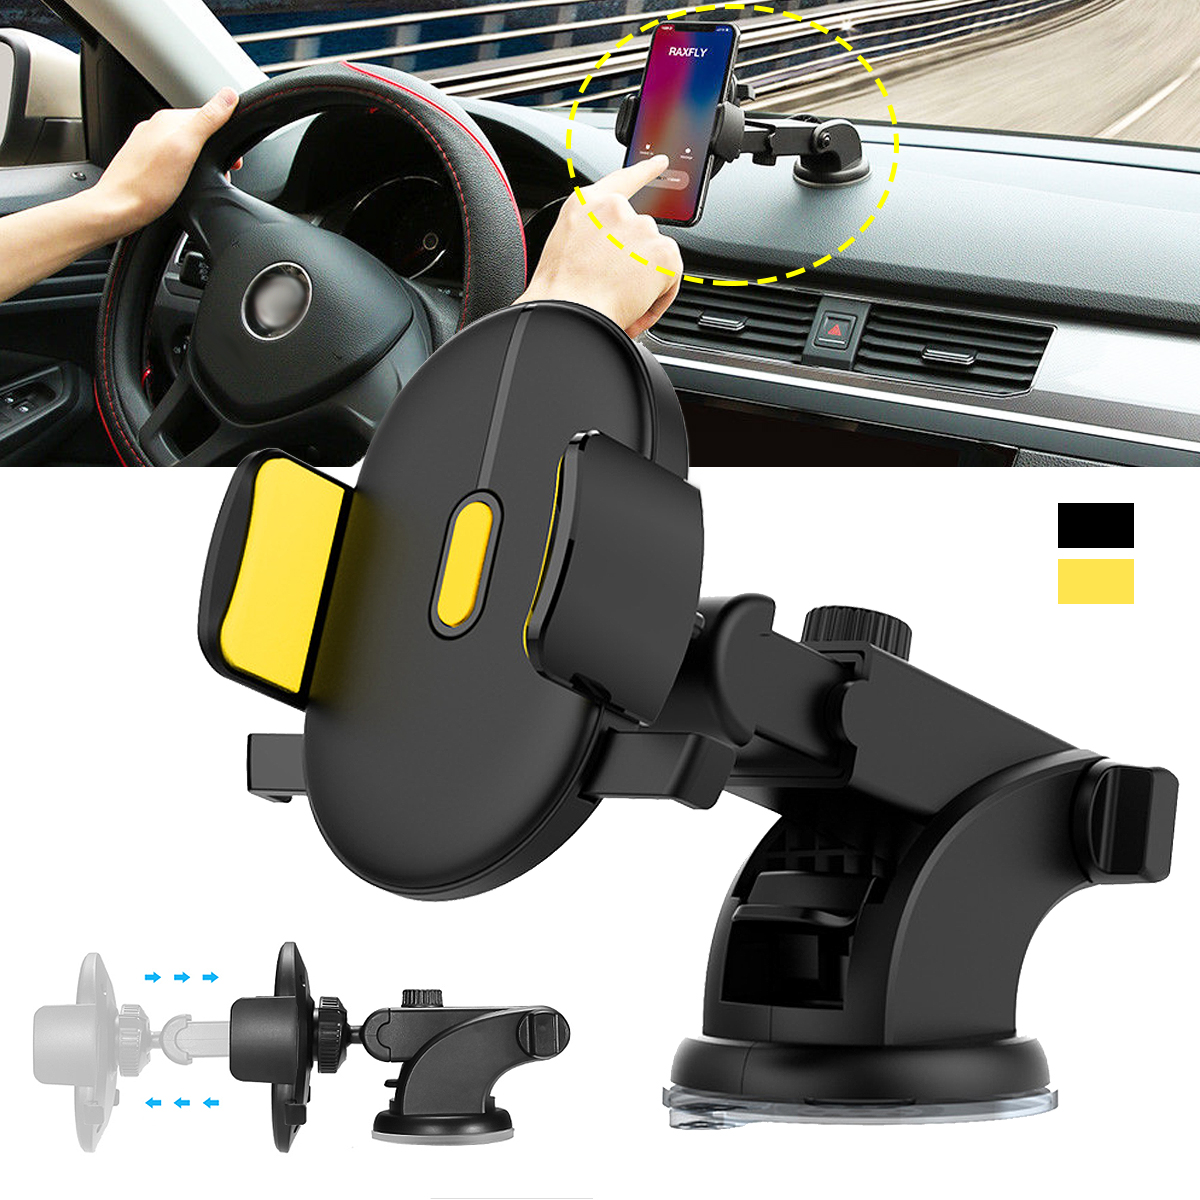 Regolabile Bloccaggio Automatico Phone Holder Mount Parabrezza Co-pilota Universal Car Phone Staffa Accessori per Interni Auto